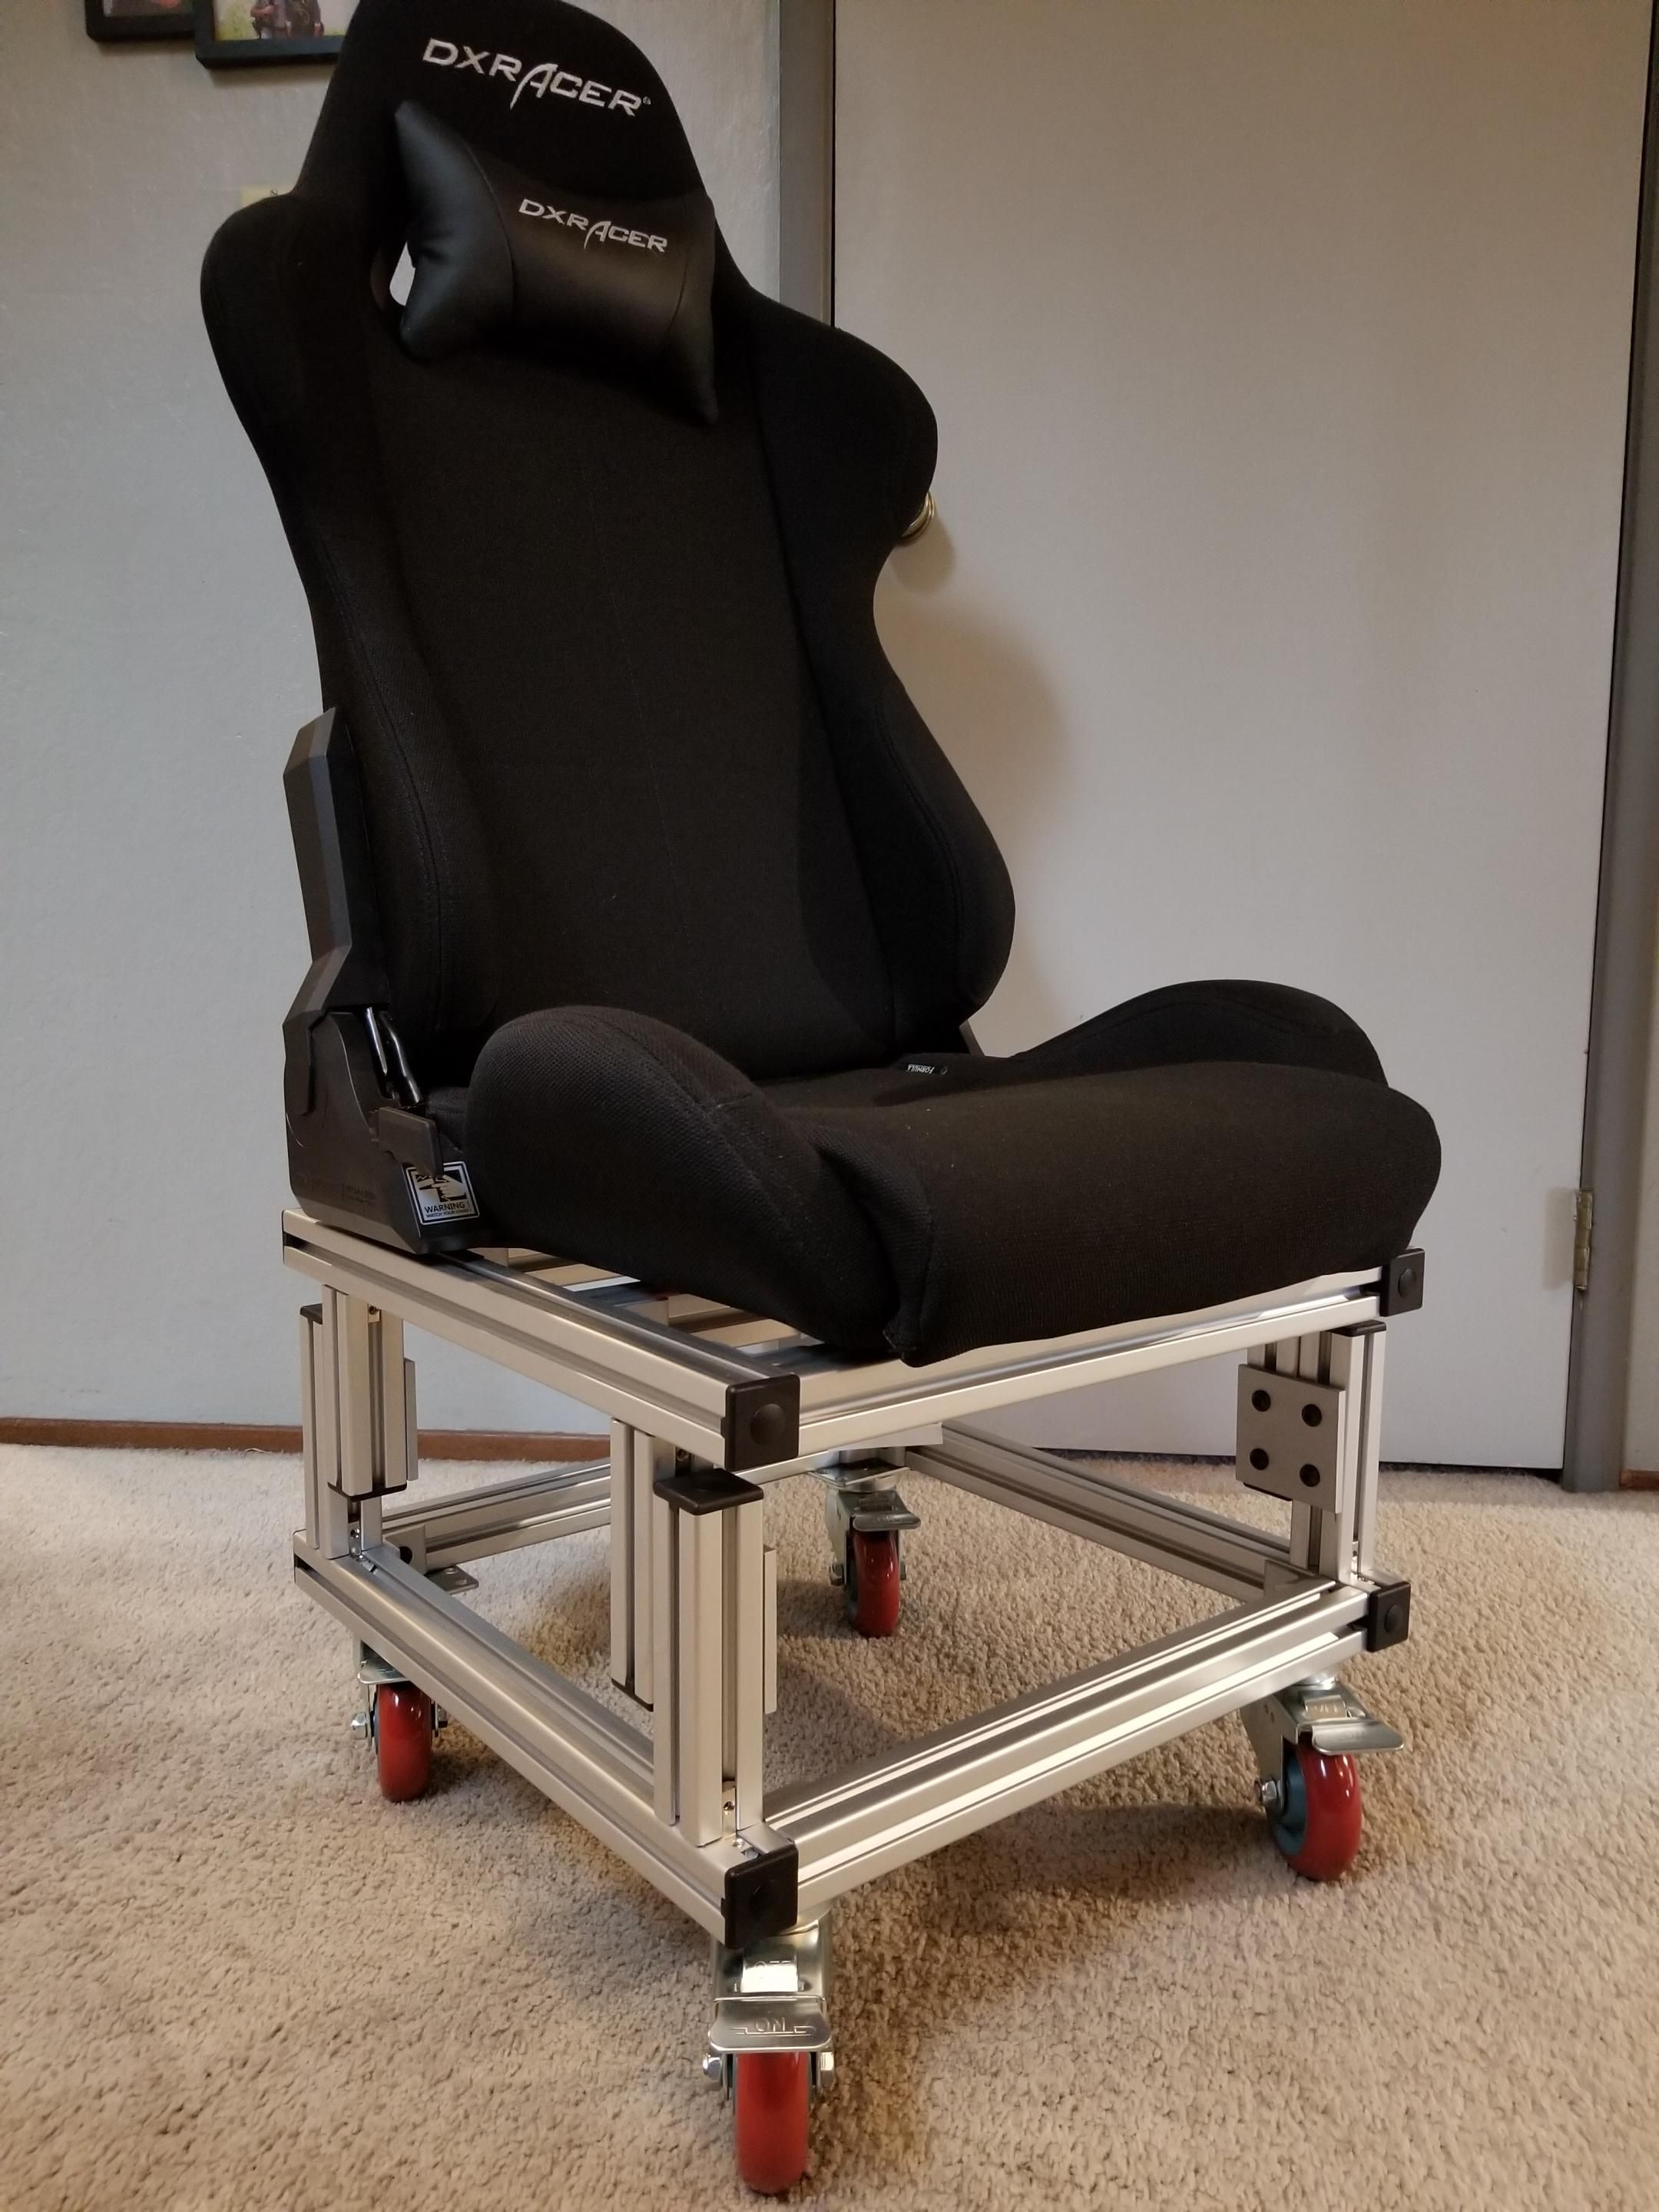 newest submissions : simracing | sim racing | Gaming chair